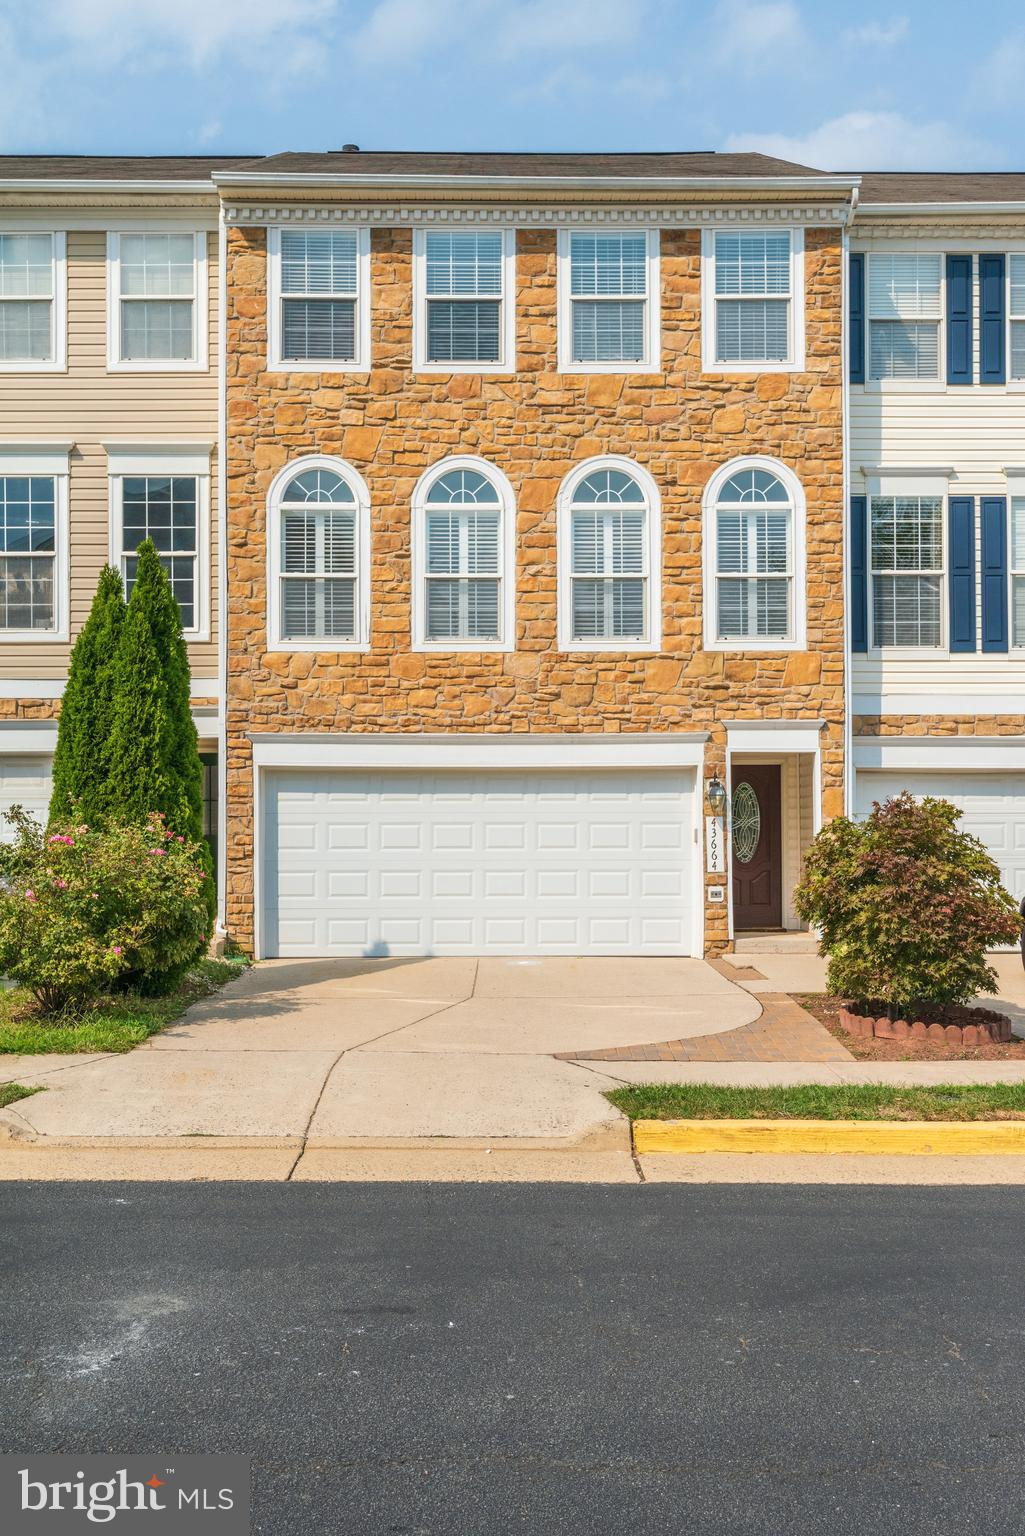 Be sure not to miss this fantastic well-kept townhome. With 3 bedrooms, 3 full baths and 1 half bath